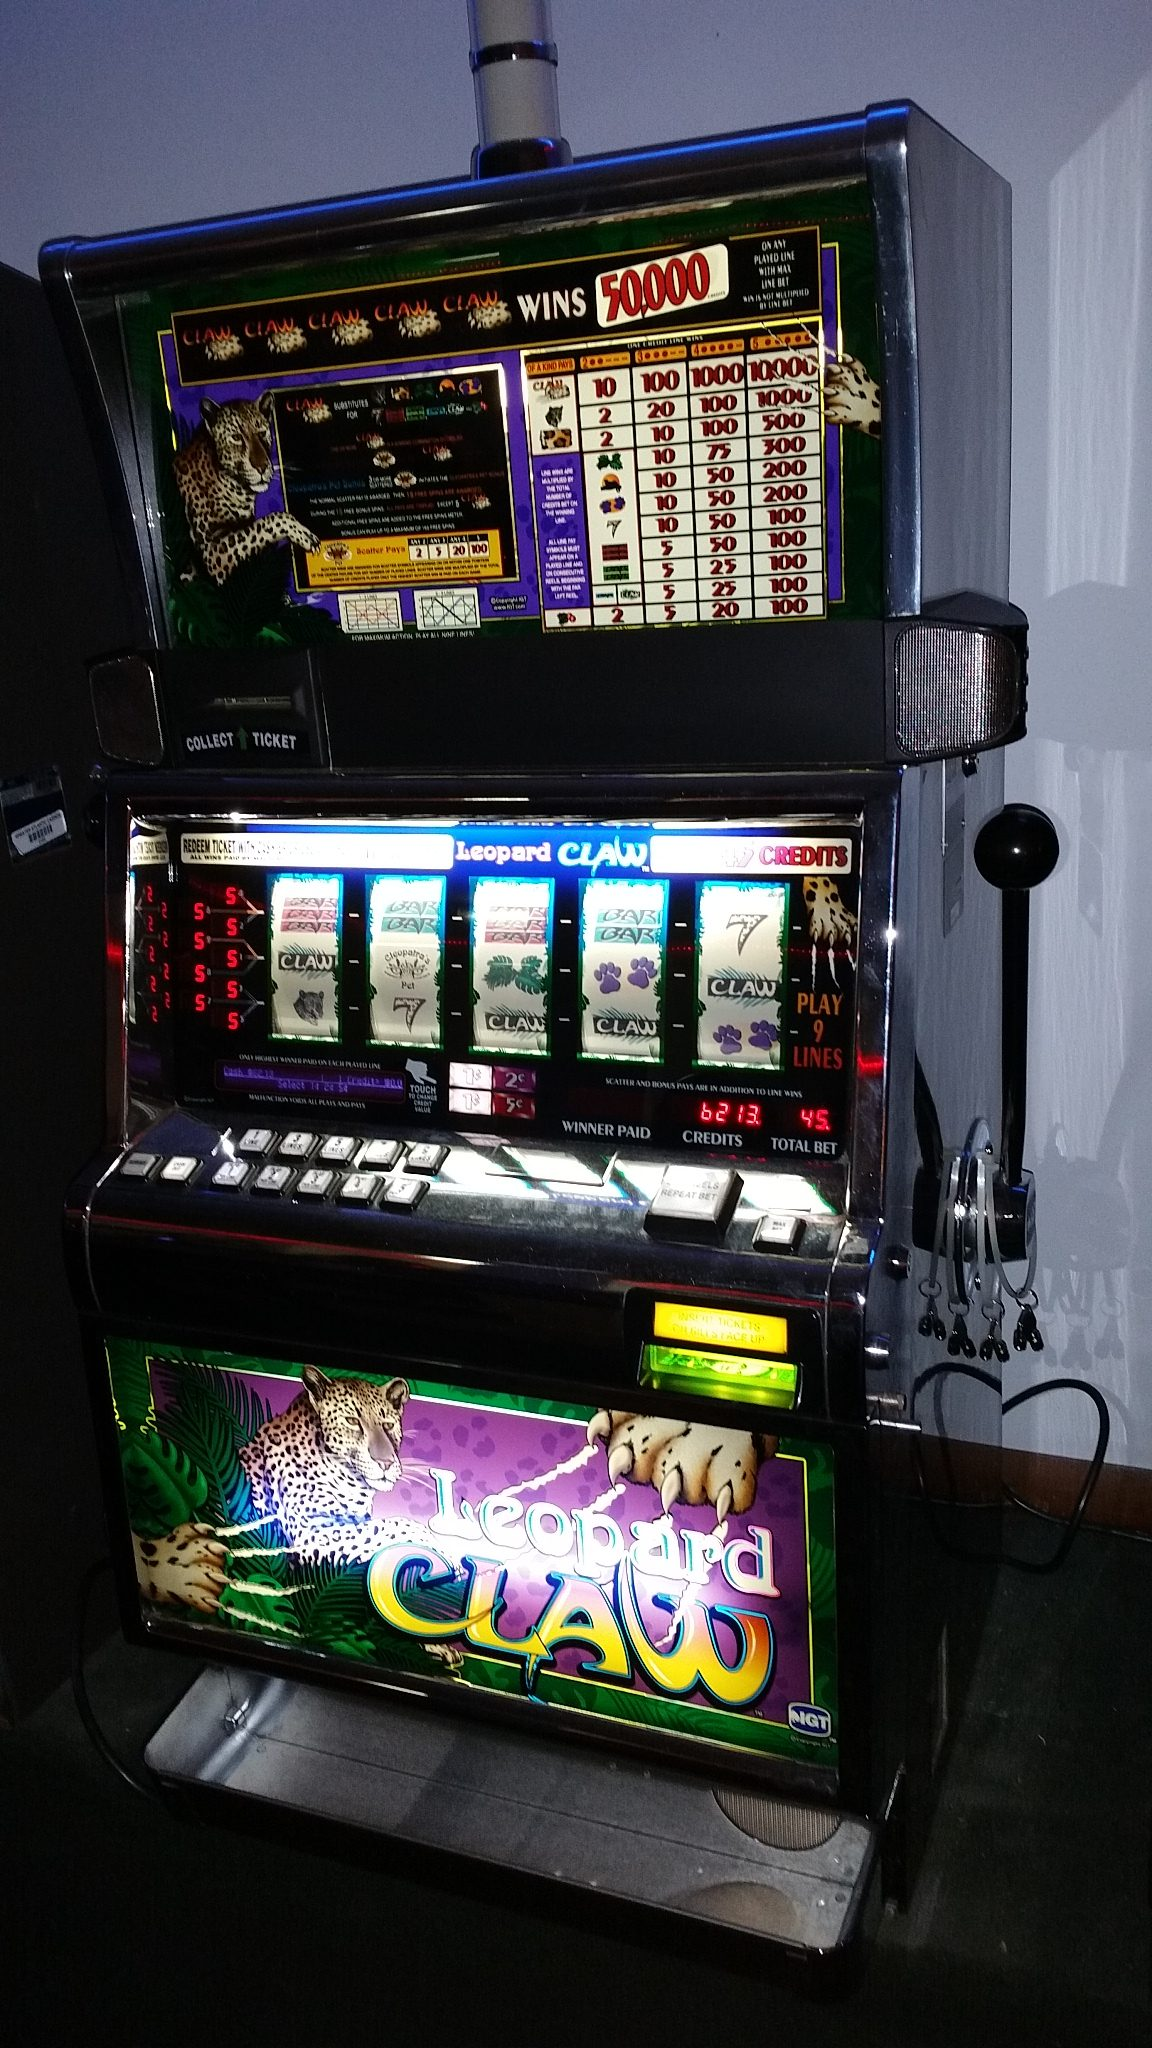 Slot Machine Odds in Las Vegas